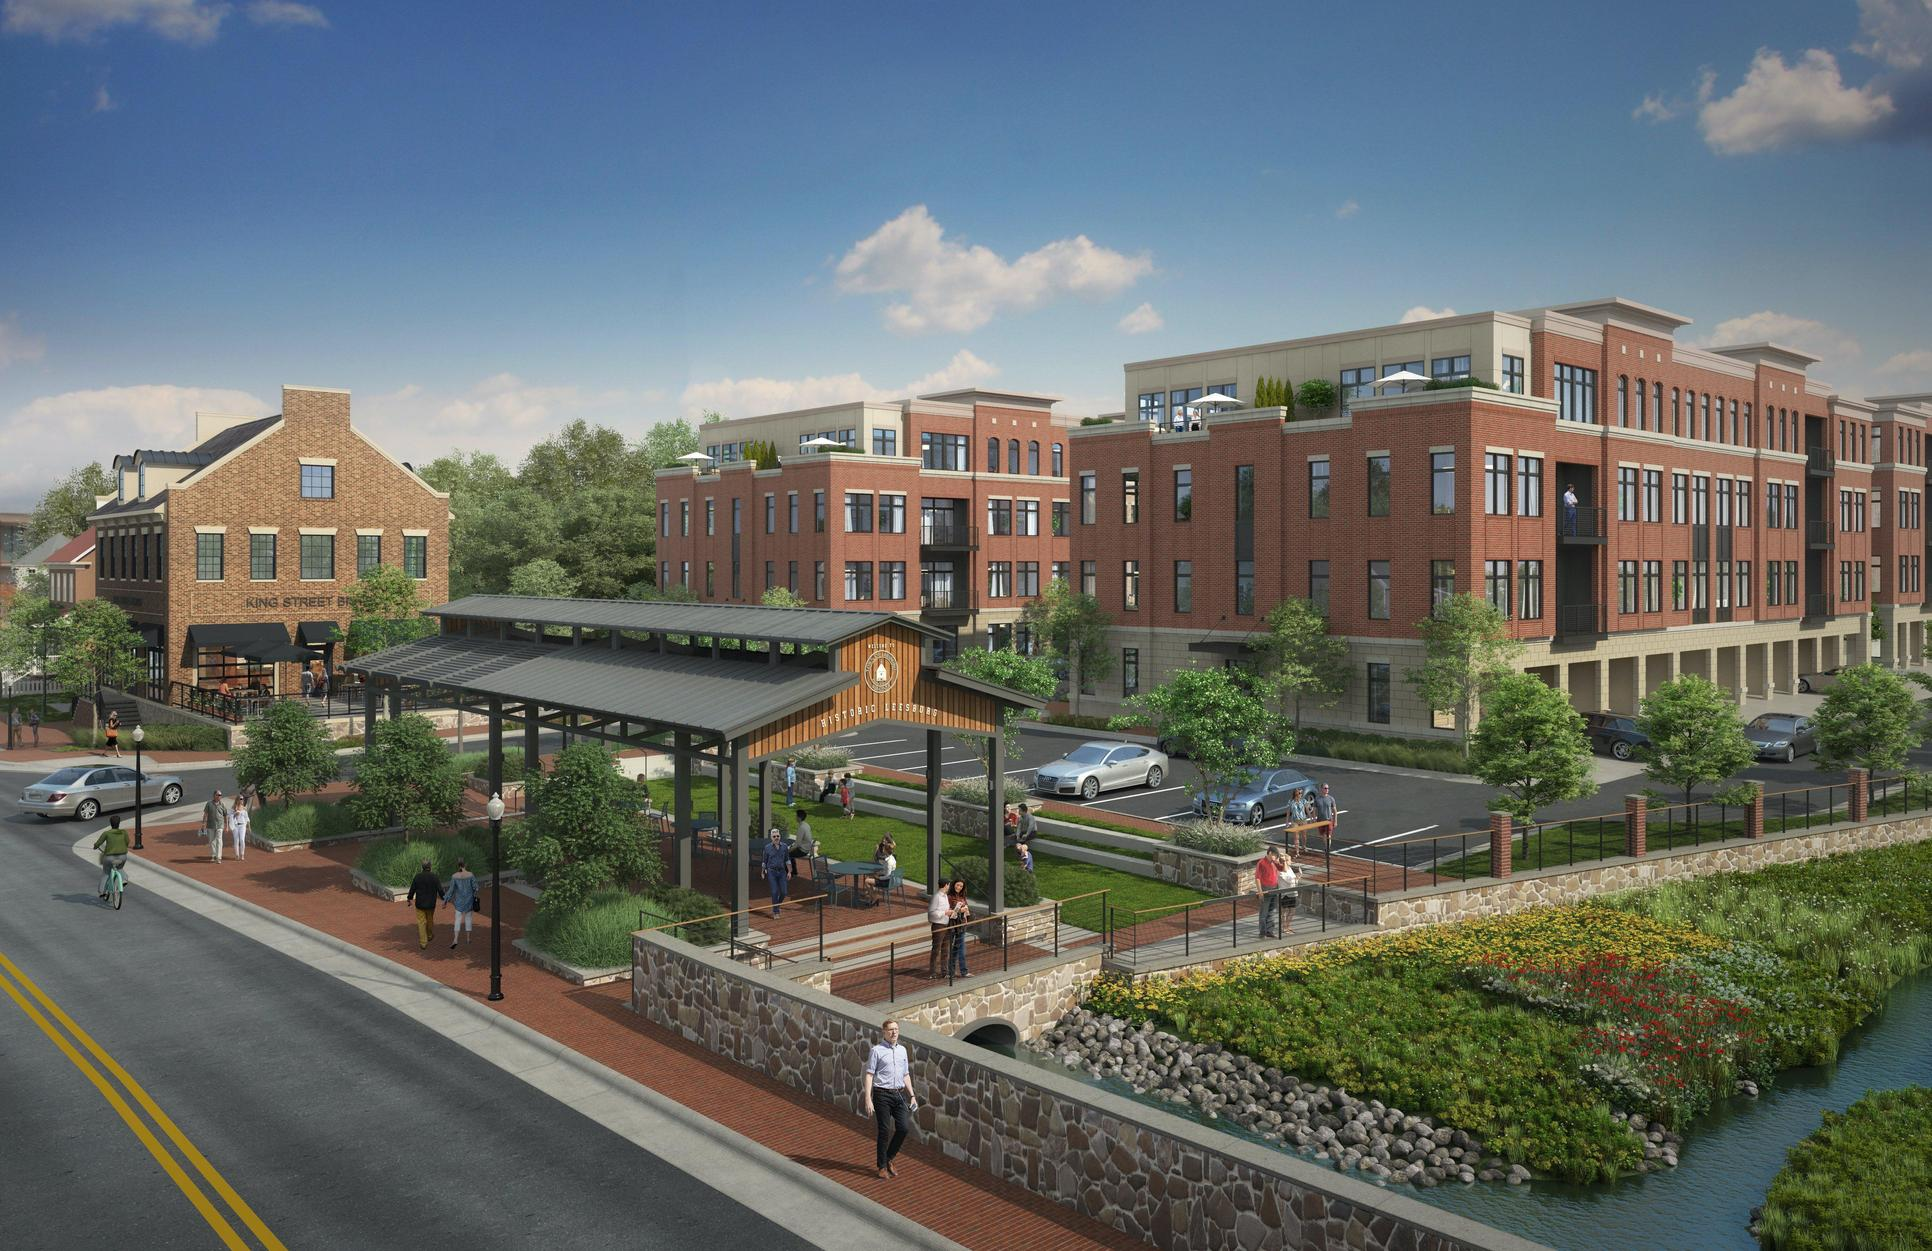 King Street Station Community Exterior:Stylish brick exteriors create the perfect welcome to King Street Station.